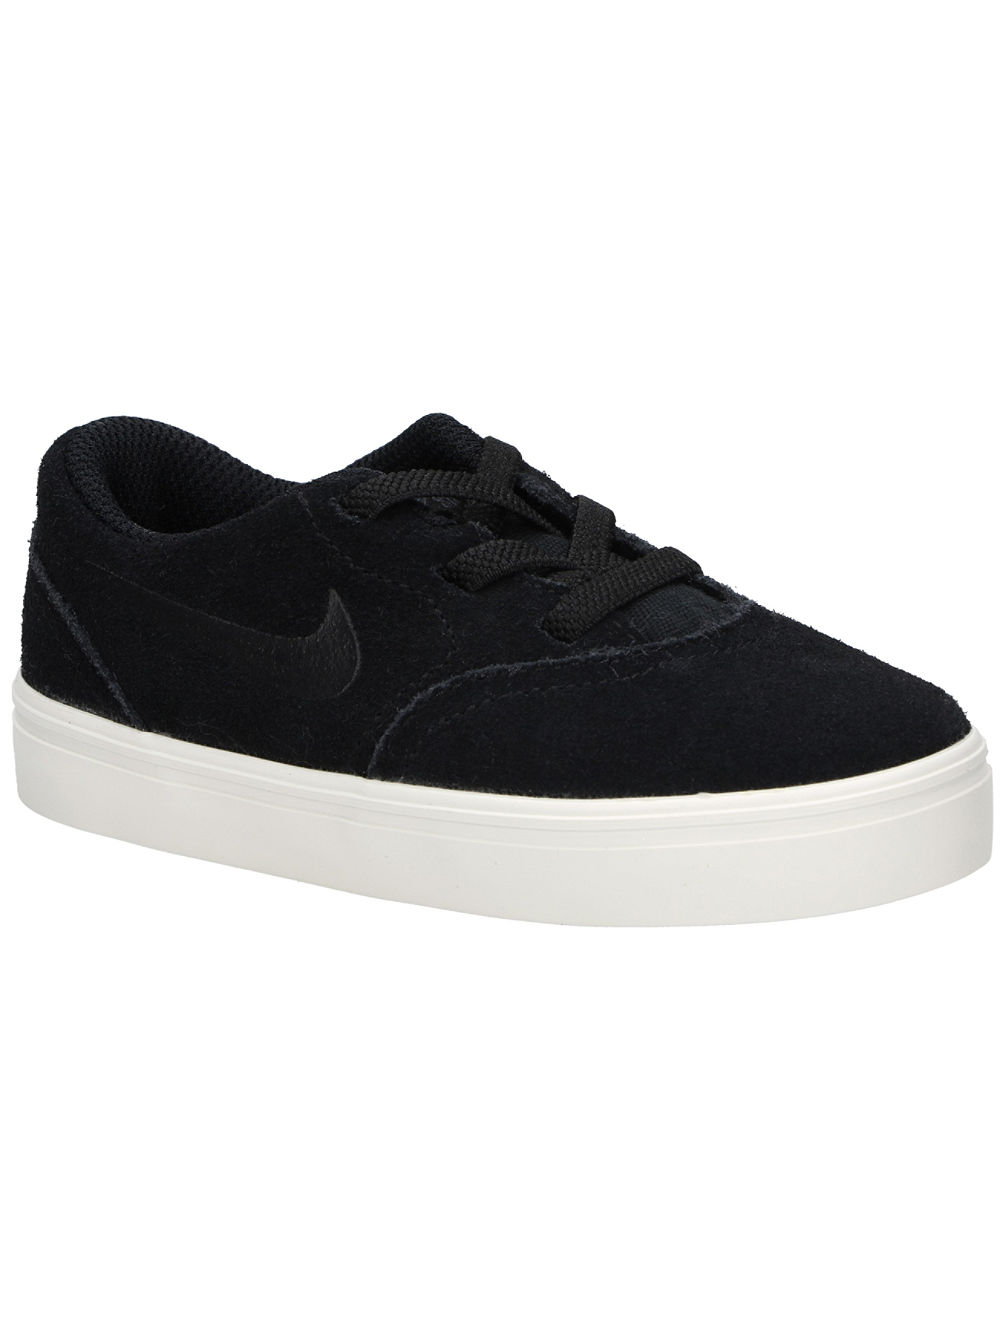 super popular abeef 2d749 Compra Nike SB Check Suede TD Skate Shoes Baby online su Blue Tomato